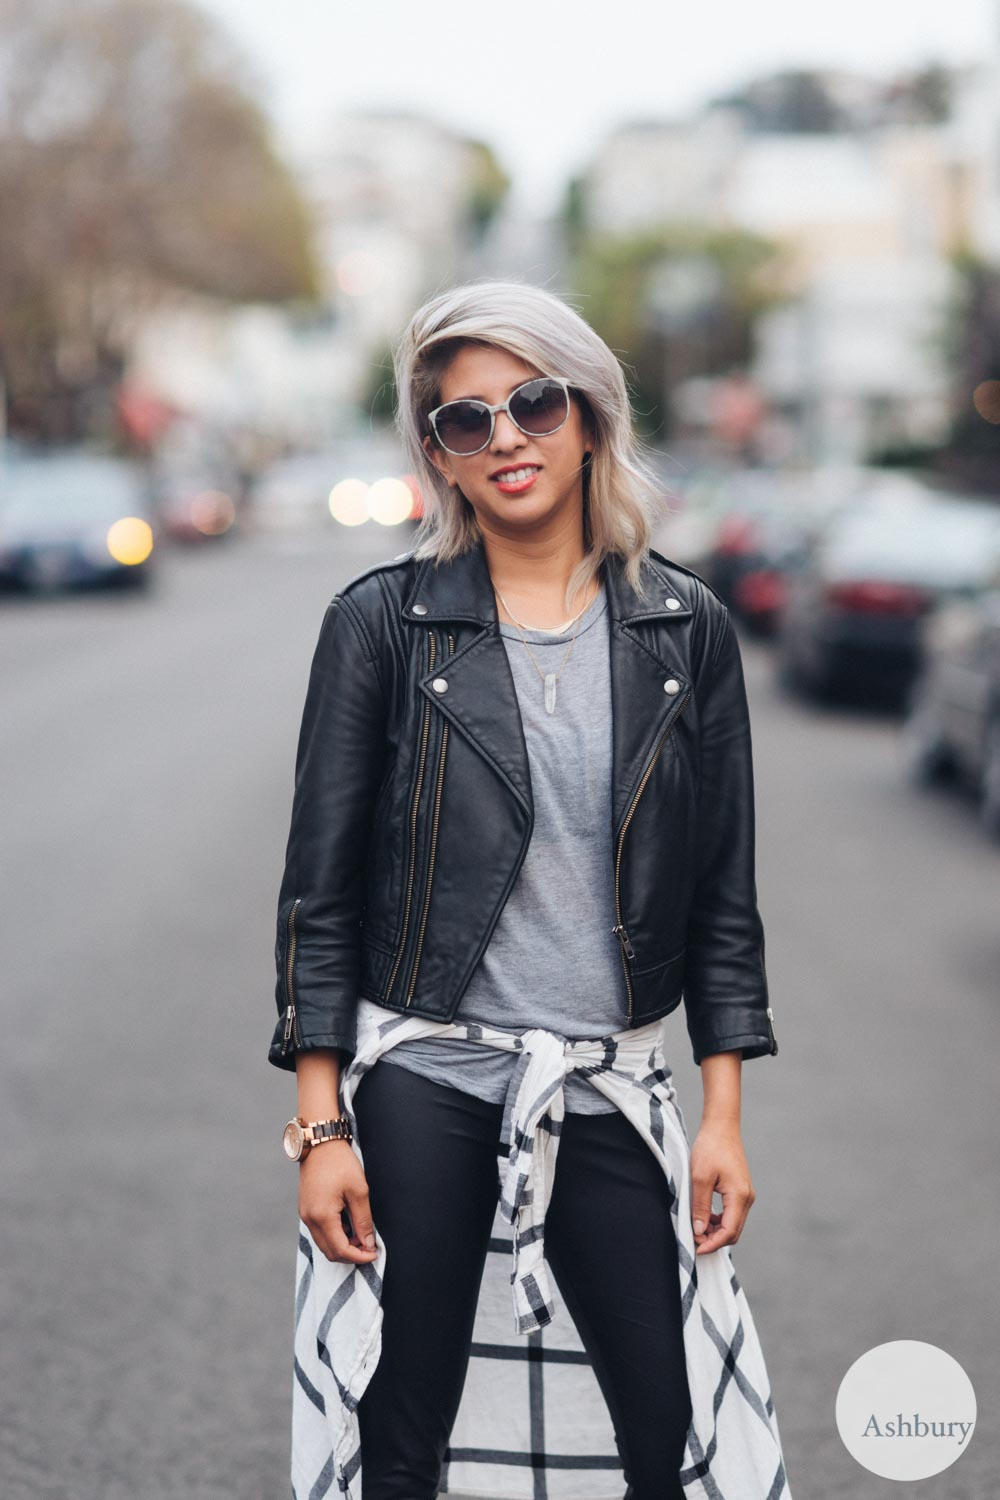 san francisco street style - jilliana